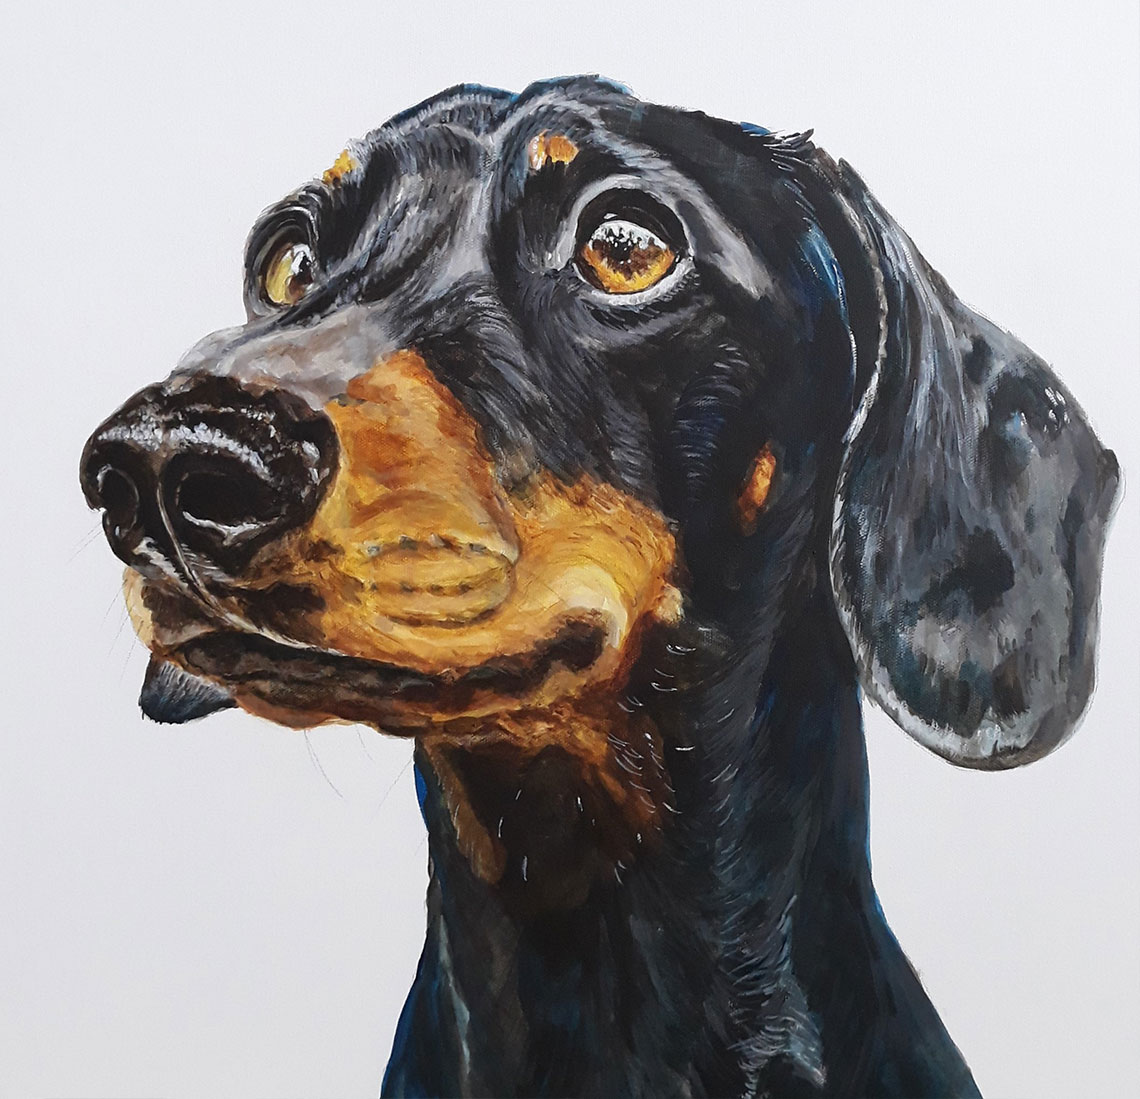 jean-ballands-australian-port-macquarie-artis-dog-portraits